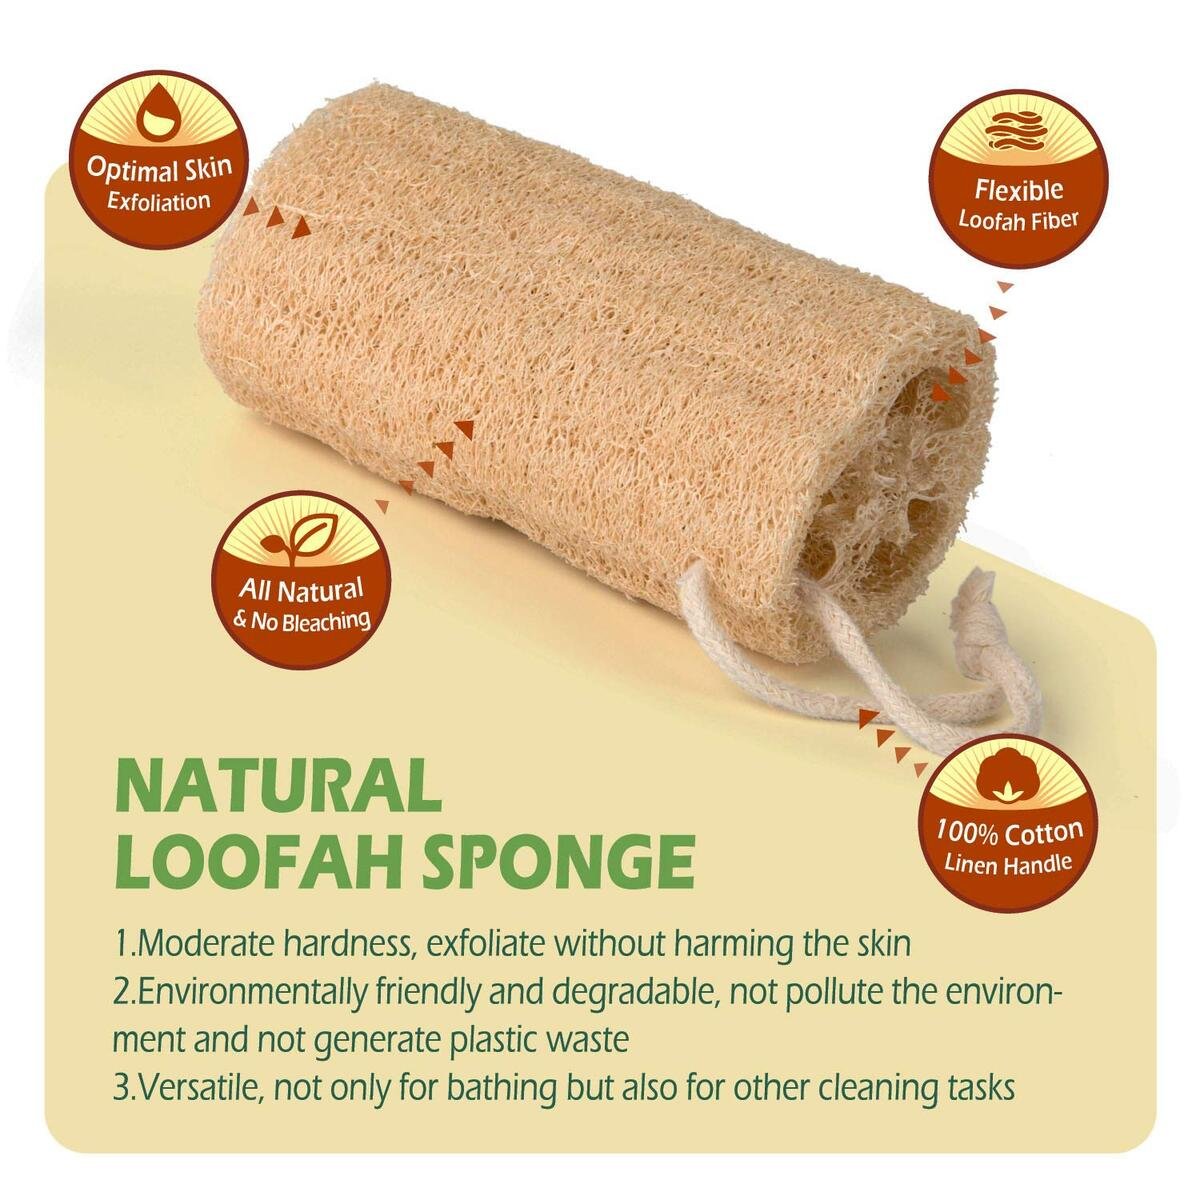 Shower Loofah Exfoliating Luffa Bath Sponge, No Bleaching Natural Shower Loofah Body Wash Scrubbers for Removing Dead Skin - 6 Packs